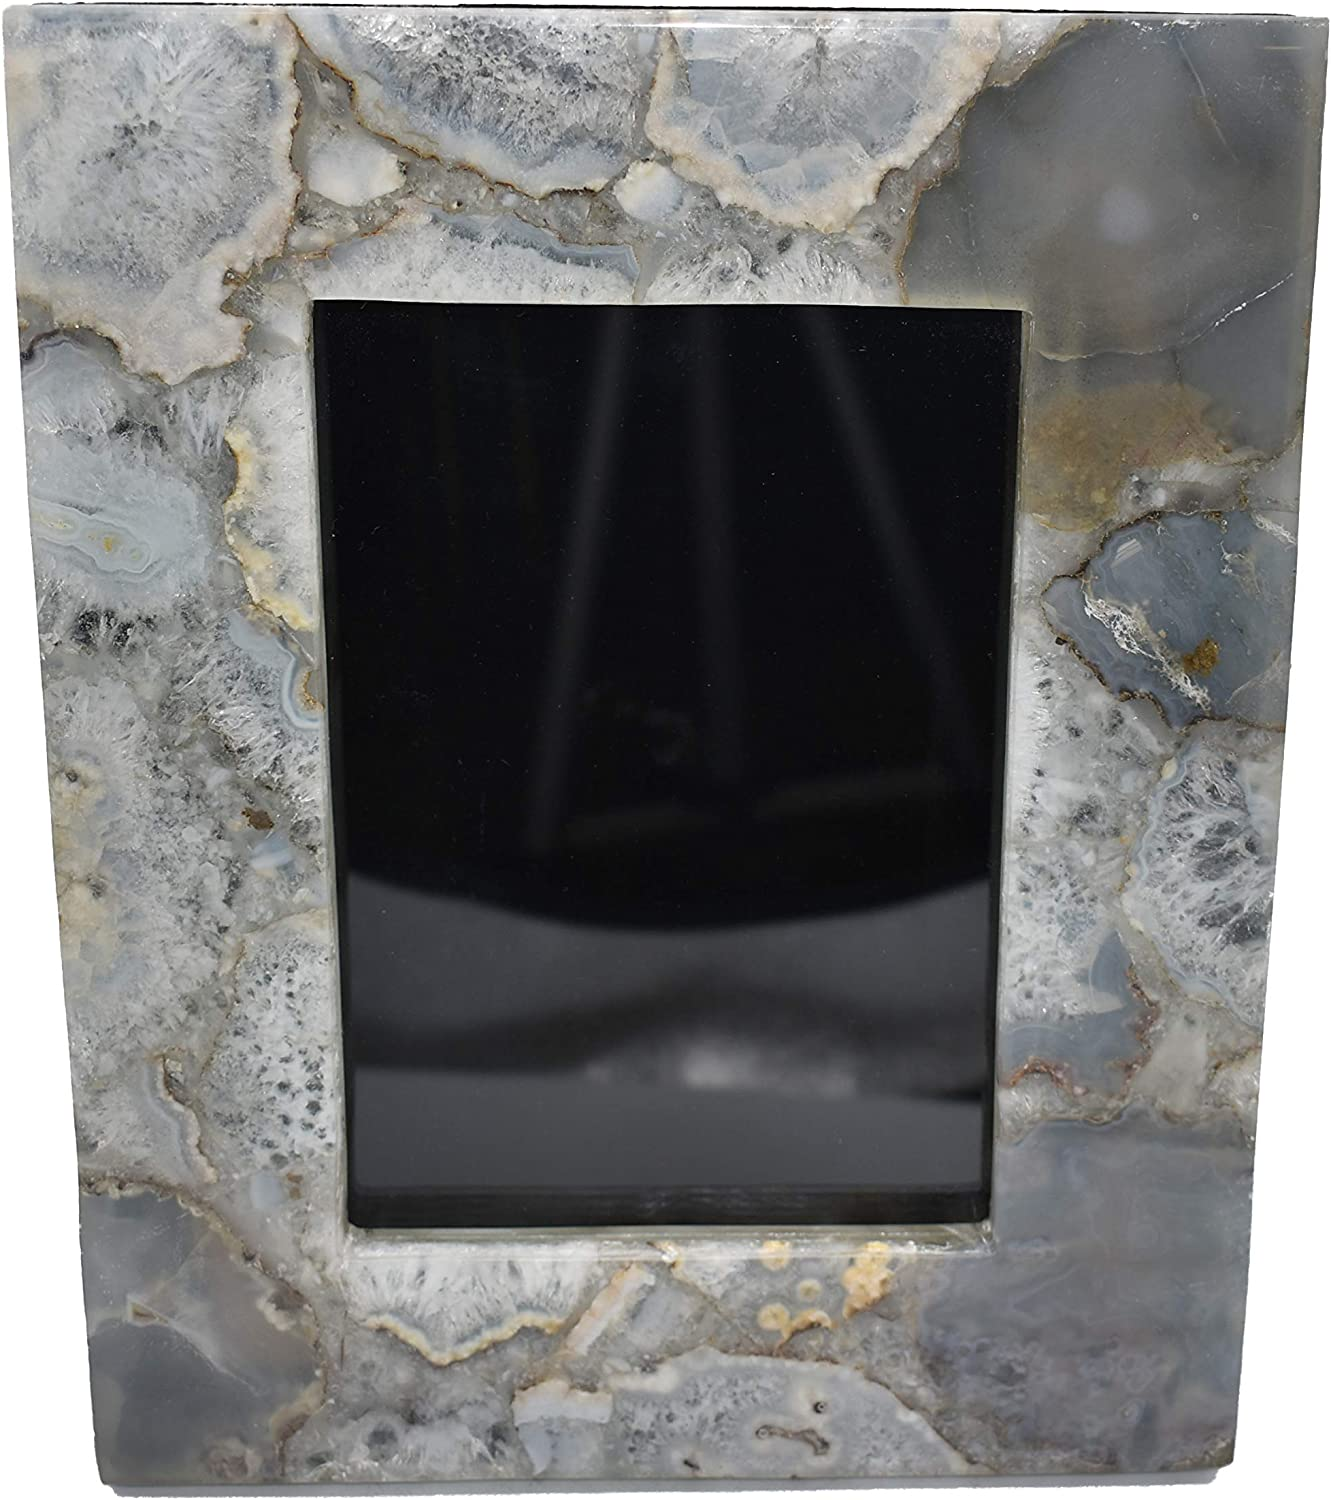 Christmas Gifts Agate Picture Frame Agate Photo Frame Memorable Pictures Family Photo Home Decor Room Decor Picture Display Portrait